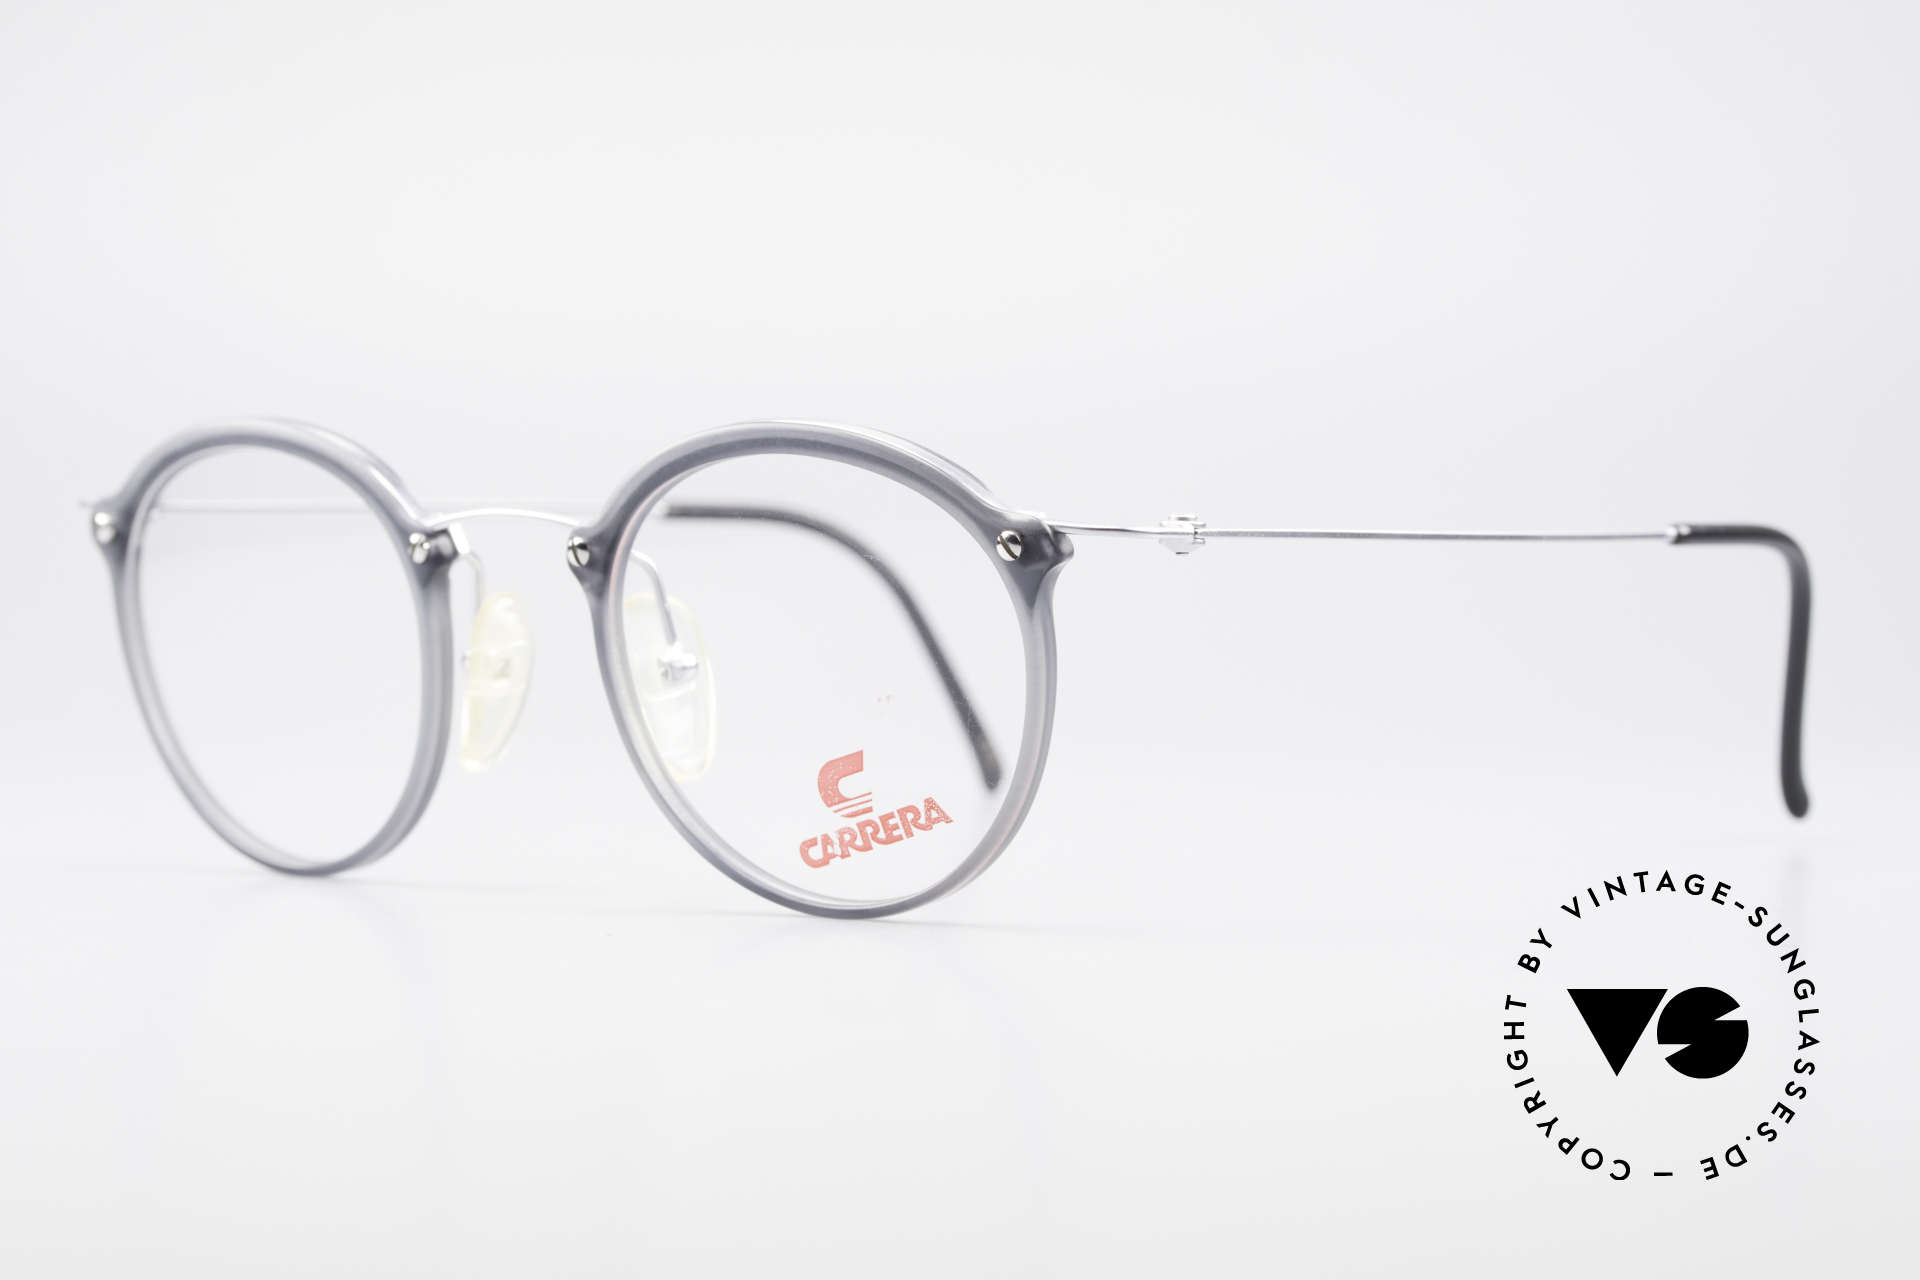 Carrera 4942 Round Panto Vintage Glasses, simply a timeless eyewear design; 1st class comfort, Made for Men and Women